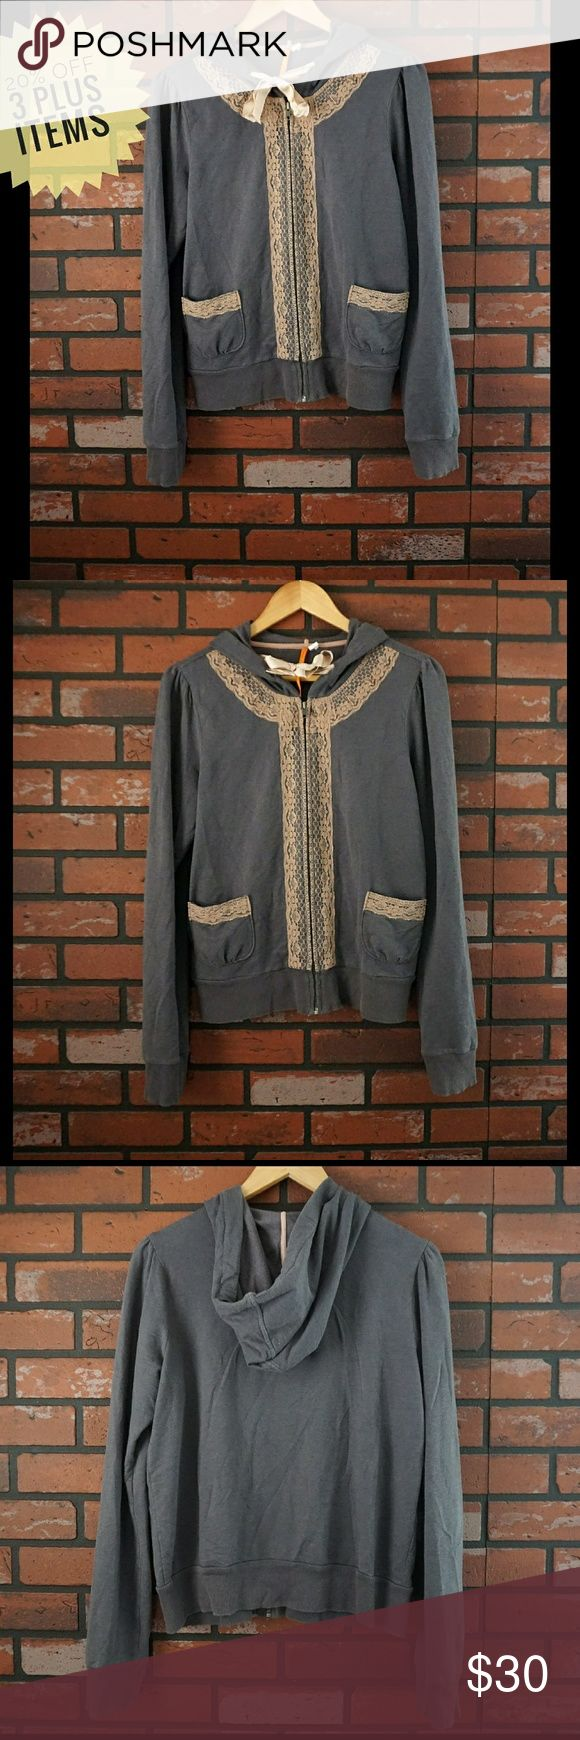 Anthropologie Sunday/Saturday Zip Hoodie. Anthropologie  Sunday Monday Tuesday Wednesday Thursday Friday Saturday  Zip Hoodie with Lace and Ribbon tie.  Size Large  61% cotton.   36% modal.   3% spandex.  Has some discoloration on the ribbon. Shown in last picture.   Approximate measurements all flat  Length 23.5 in. Bust 20 in. Shoulders 16 in. Stretches to 19 in. Sleeves 27.5 in. Anthropologie Tops Sweatshirts & Hoodies